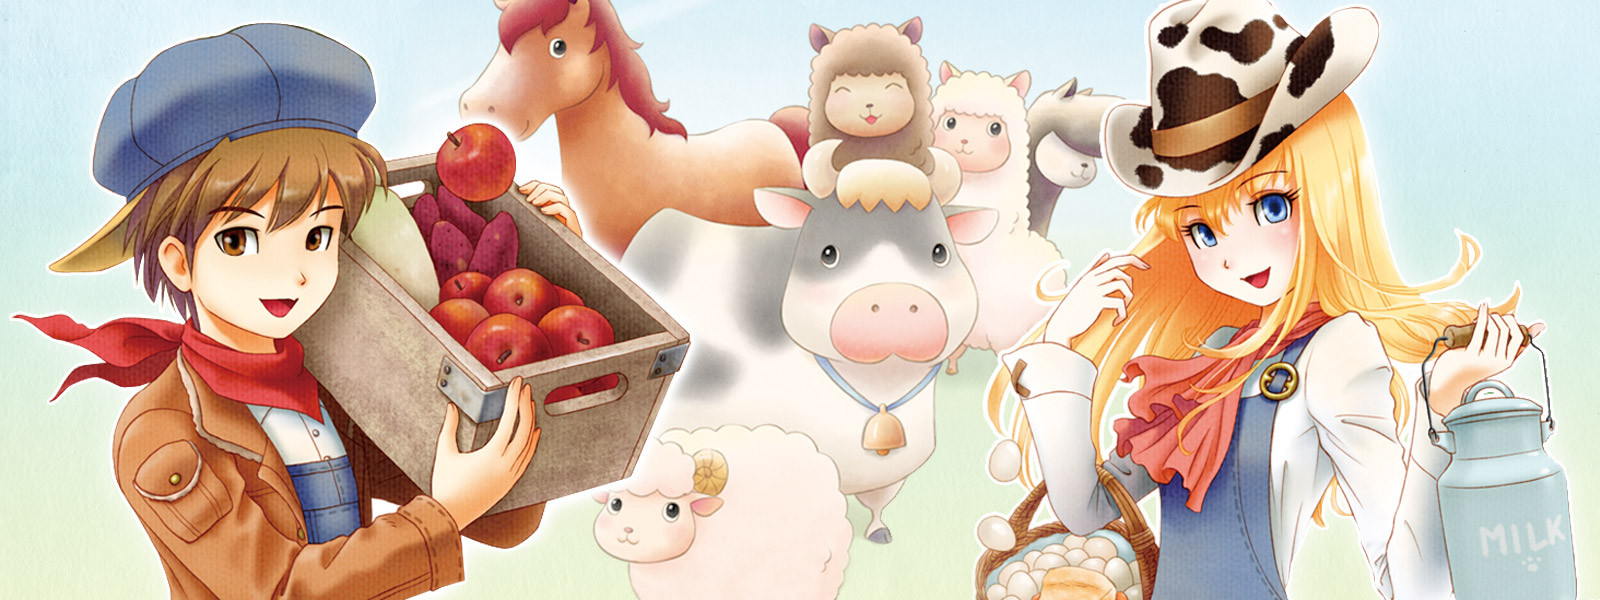 Harvest Moon Harvest Moon: A New Beginning (3DS) Review HM ANB 110112 1600